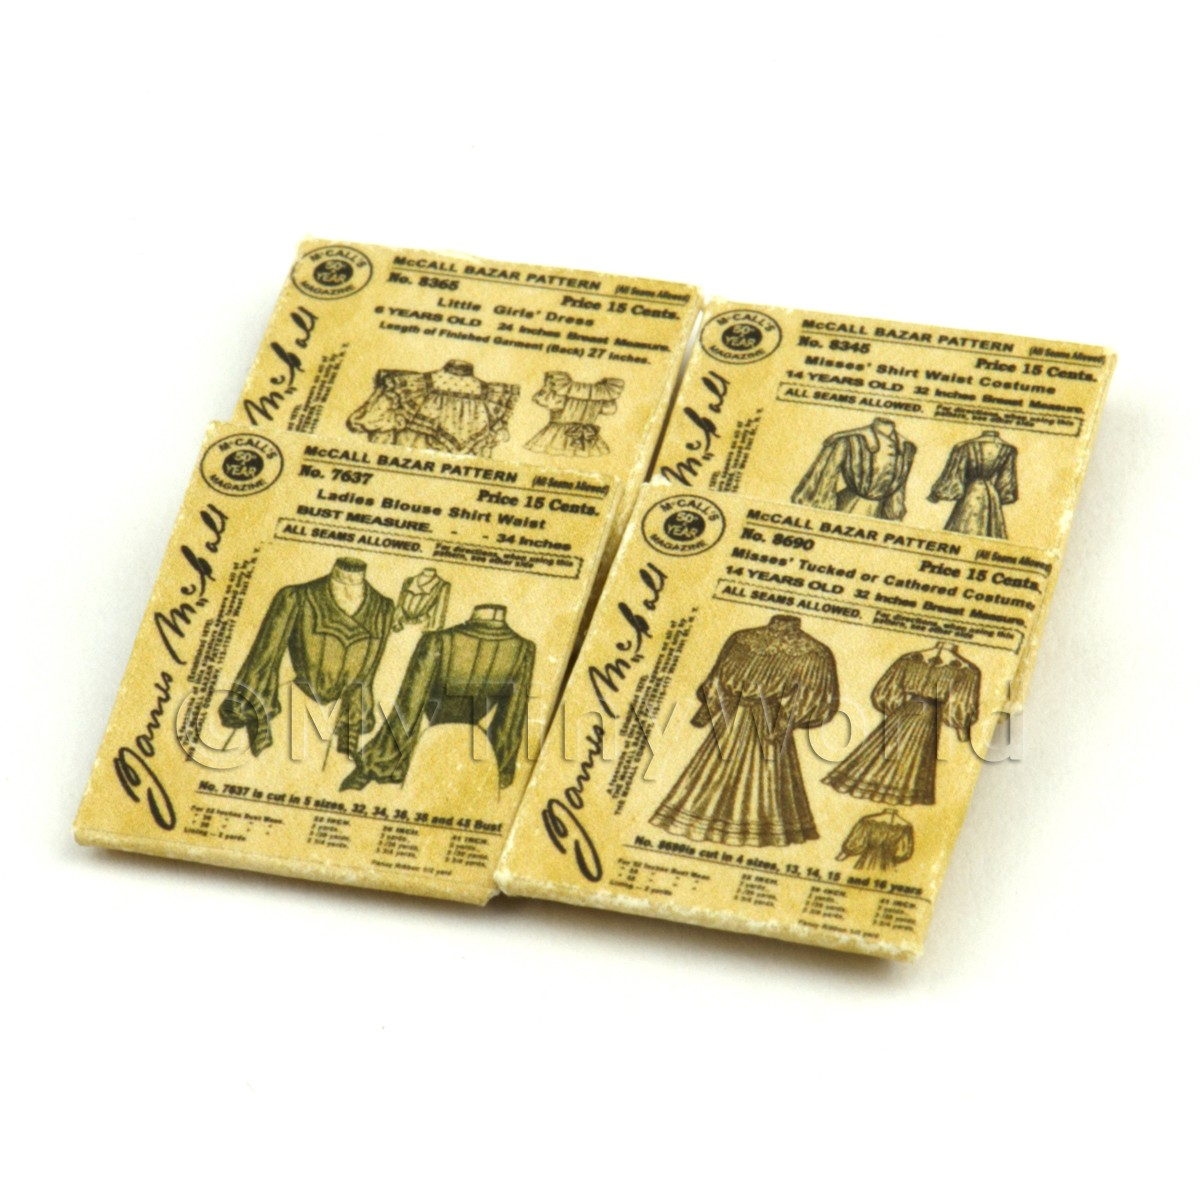 4 Dolls House Miniature Victorian Dress Pattern Packets (VDPS01)